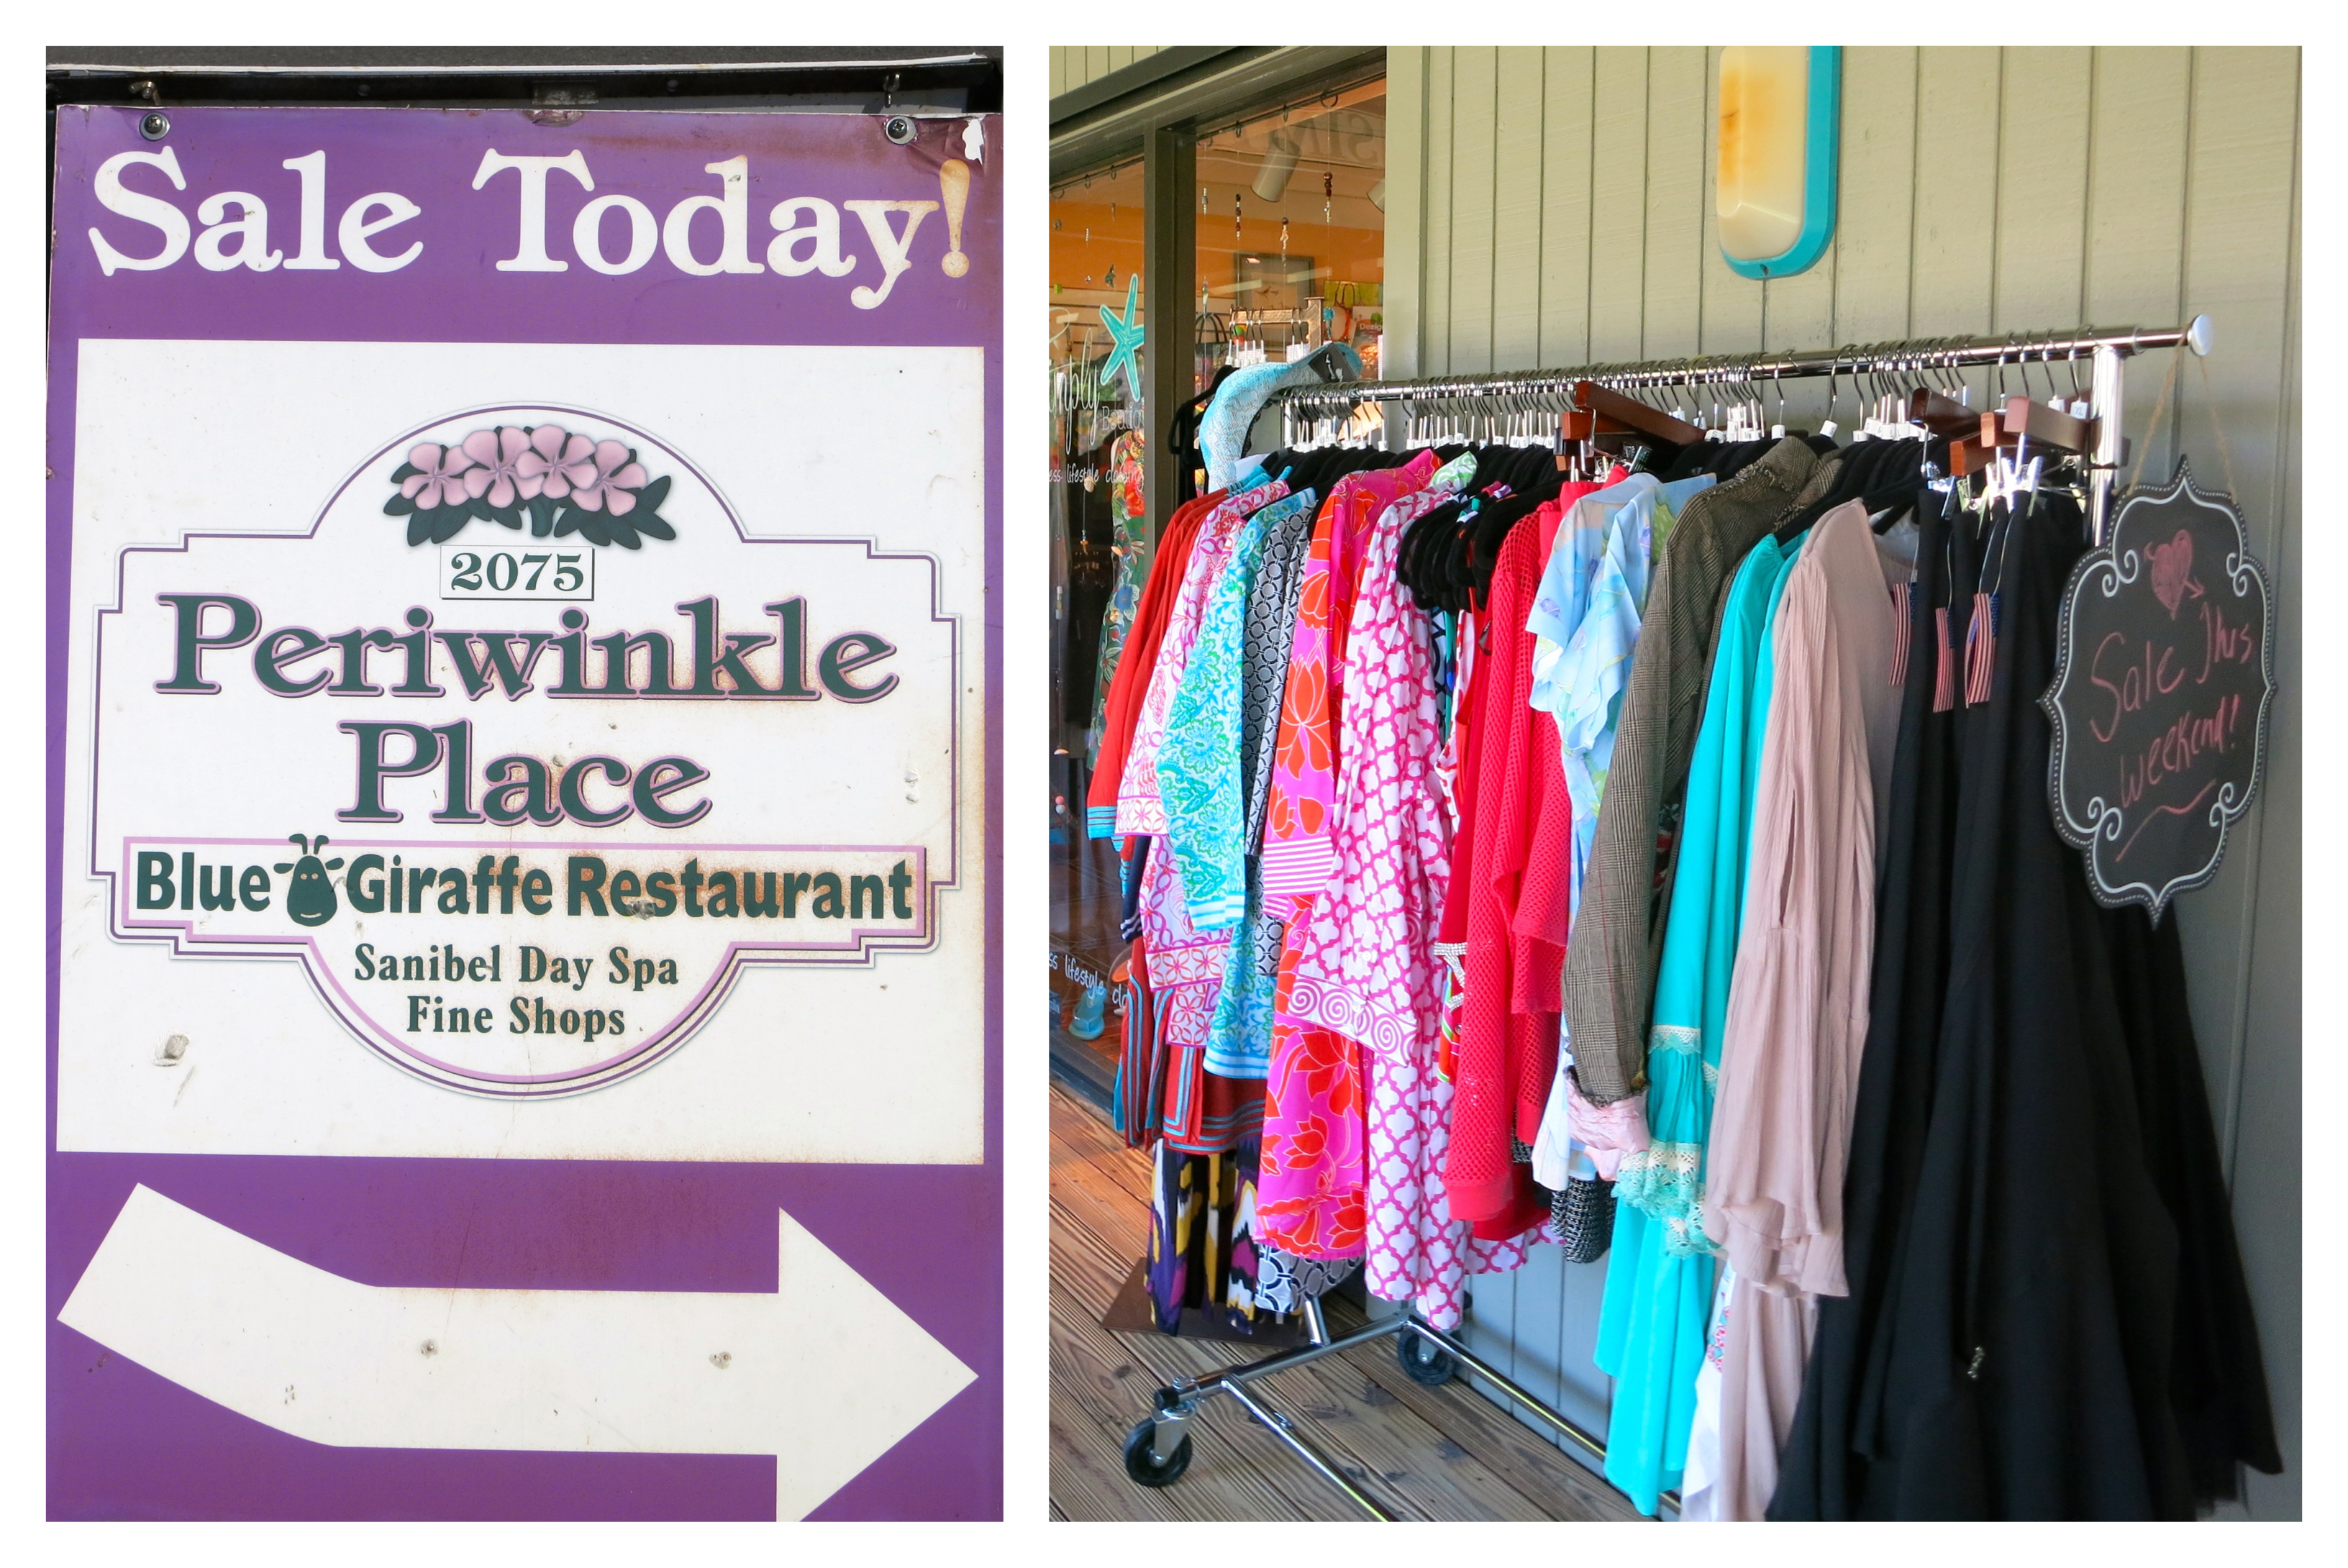 Periwinkle Place Sale